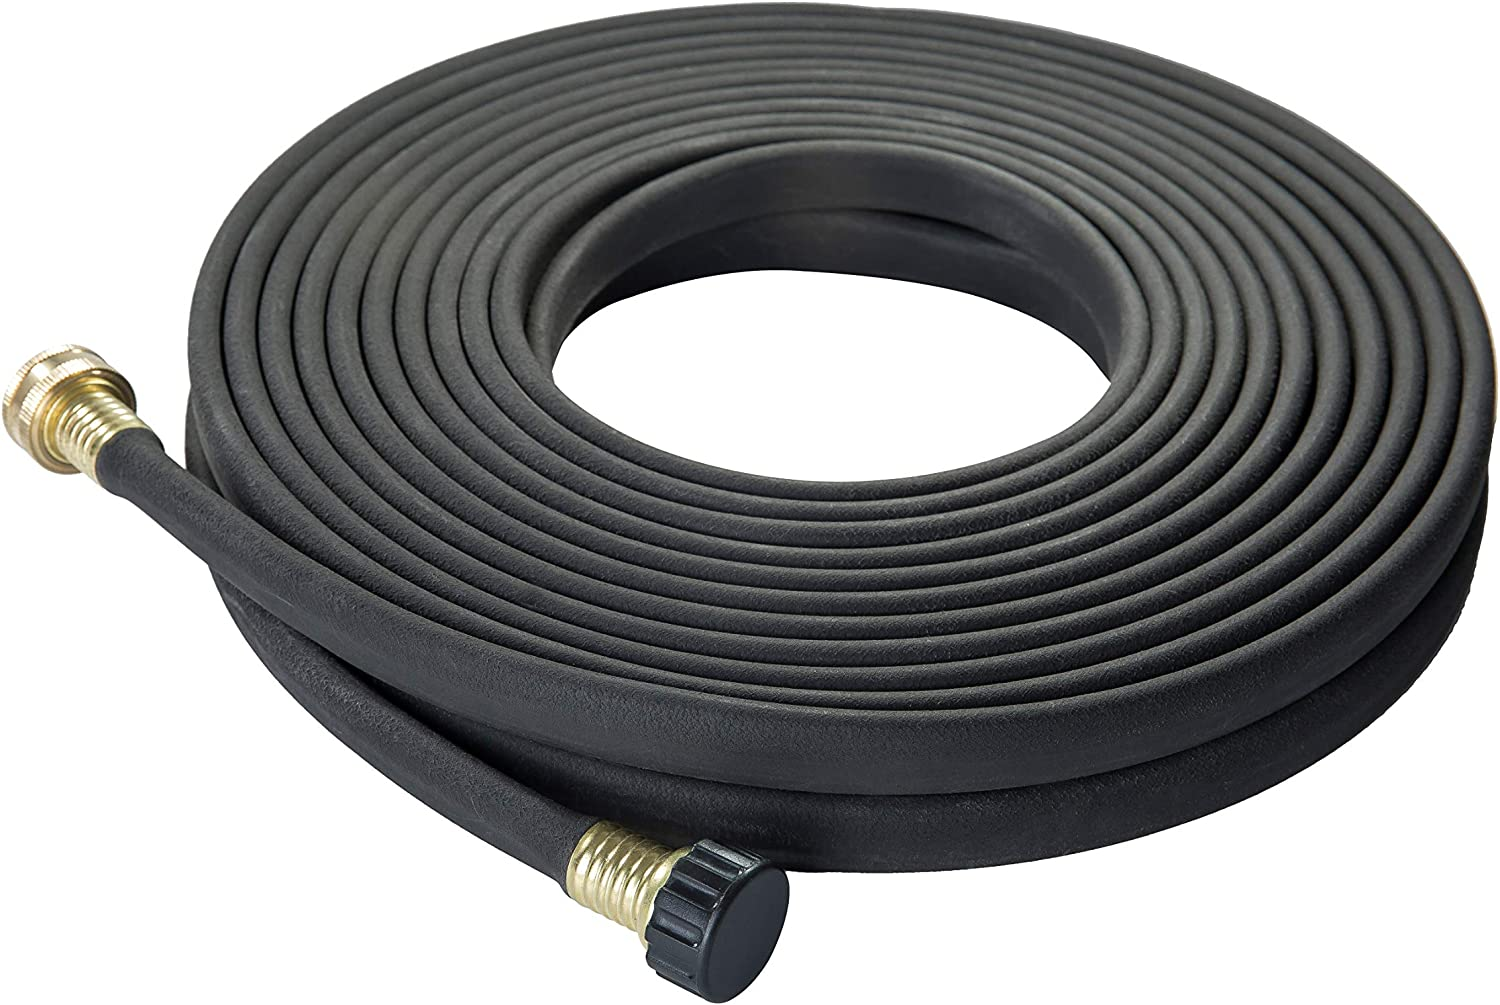 LINEX Garden Soaker hose More Water leakage Heavy Duty Metal Hose Connector Ends 1/2 inch x 50 ft